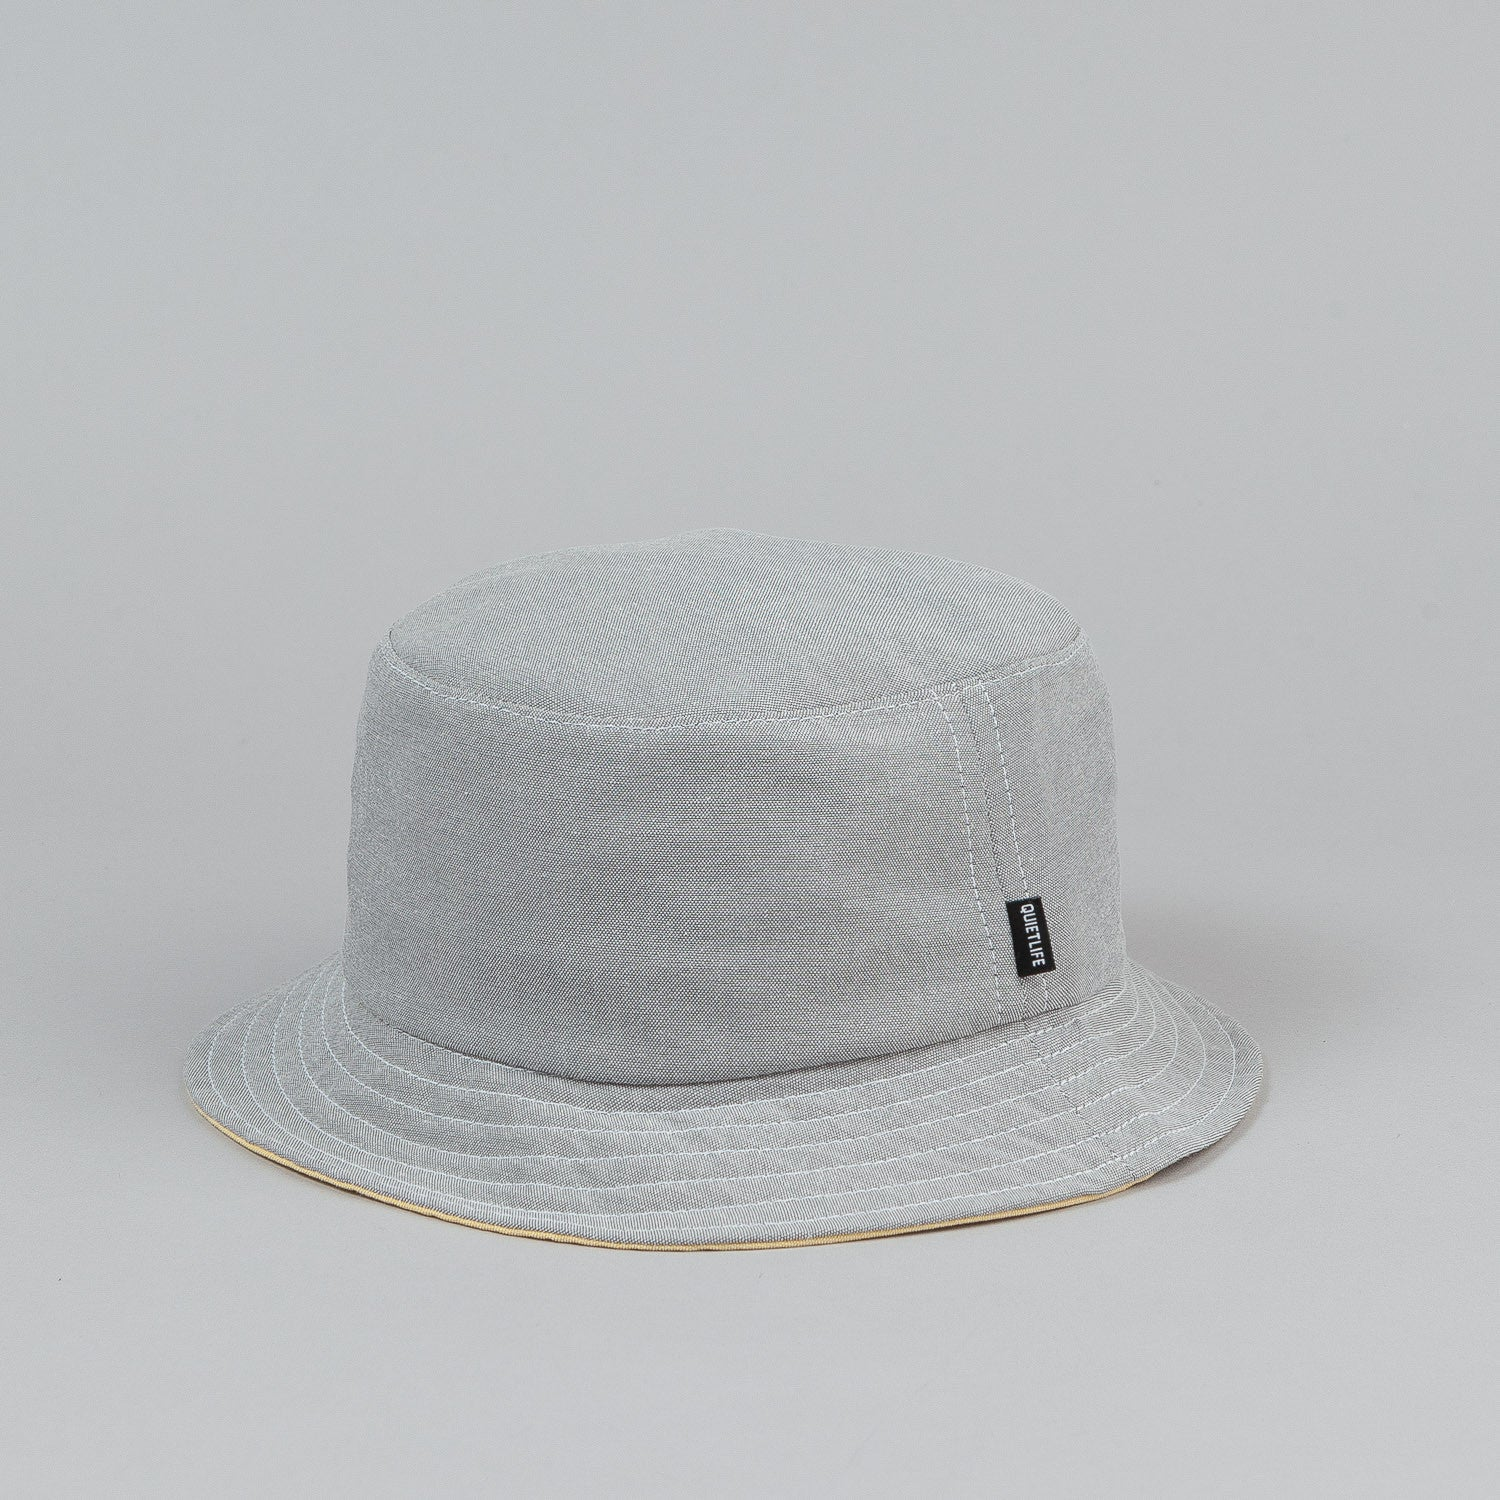 The Quiet Life Oxford Bucket Hat